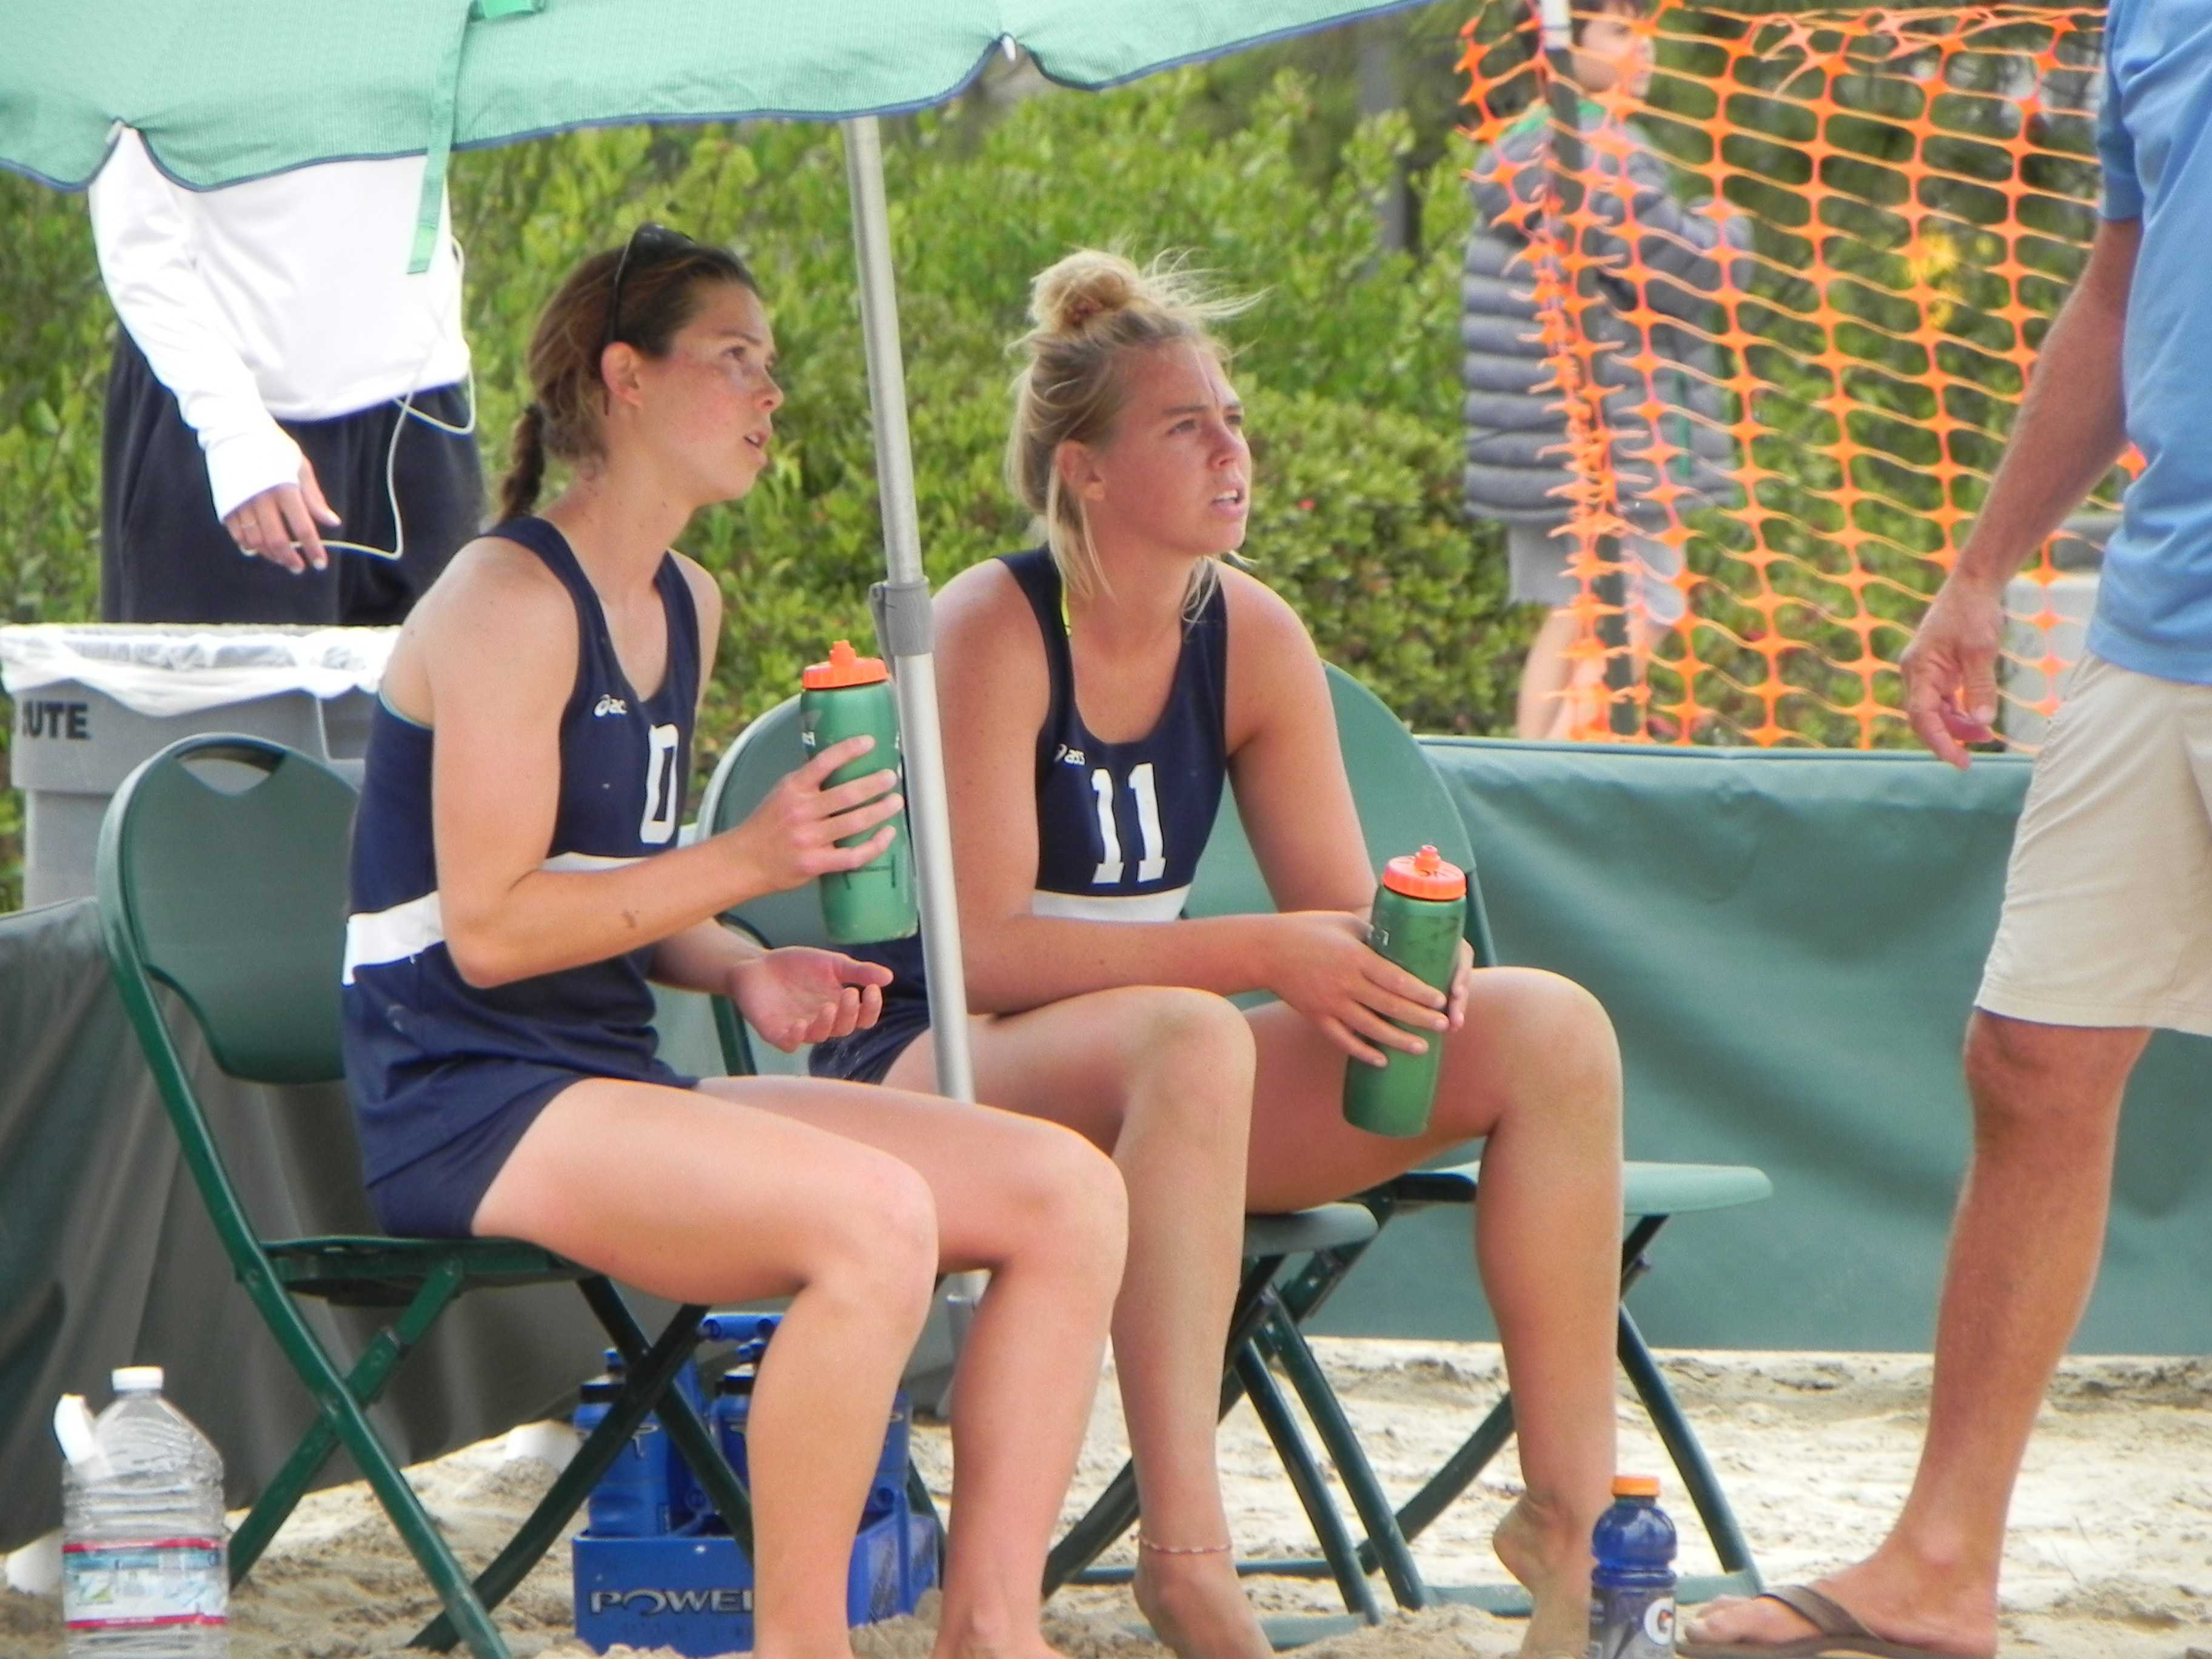 Beach volleyball season ends with Irvine Valley's Earnest/Reinking crowned state champions